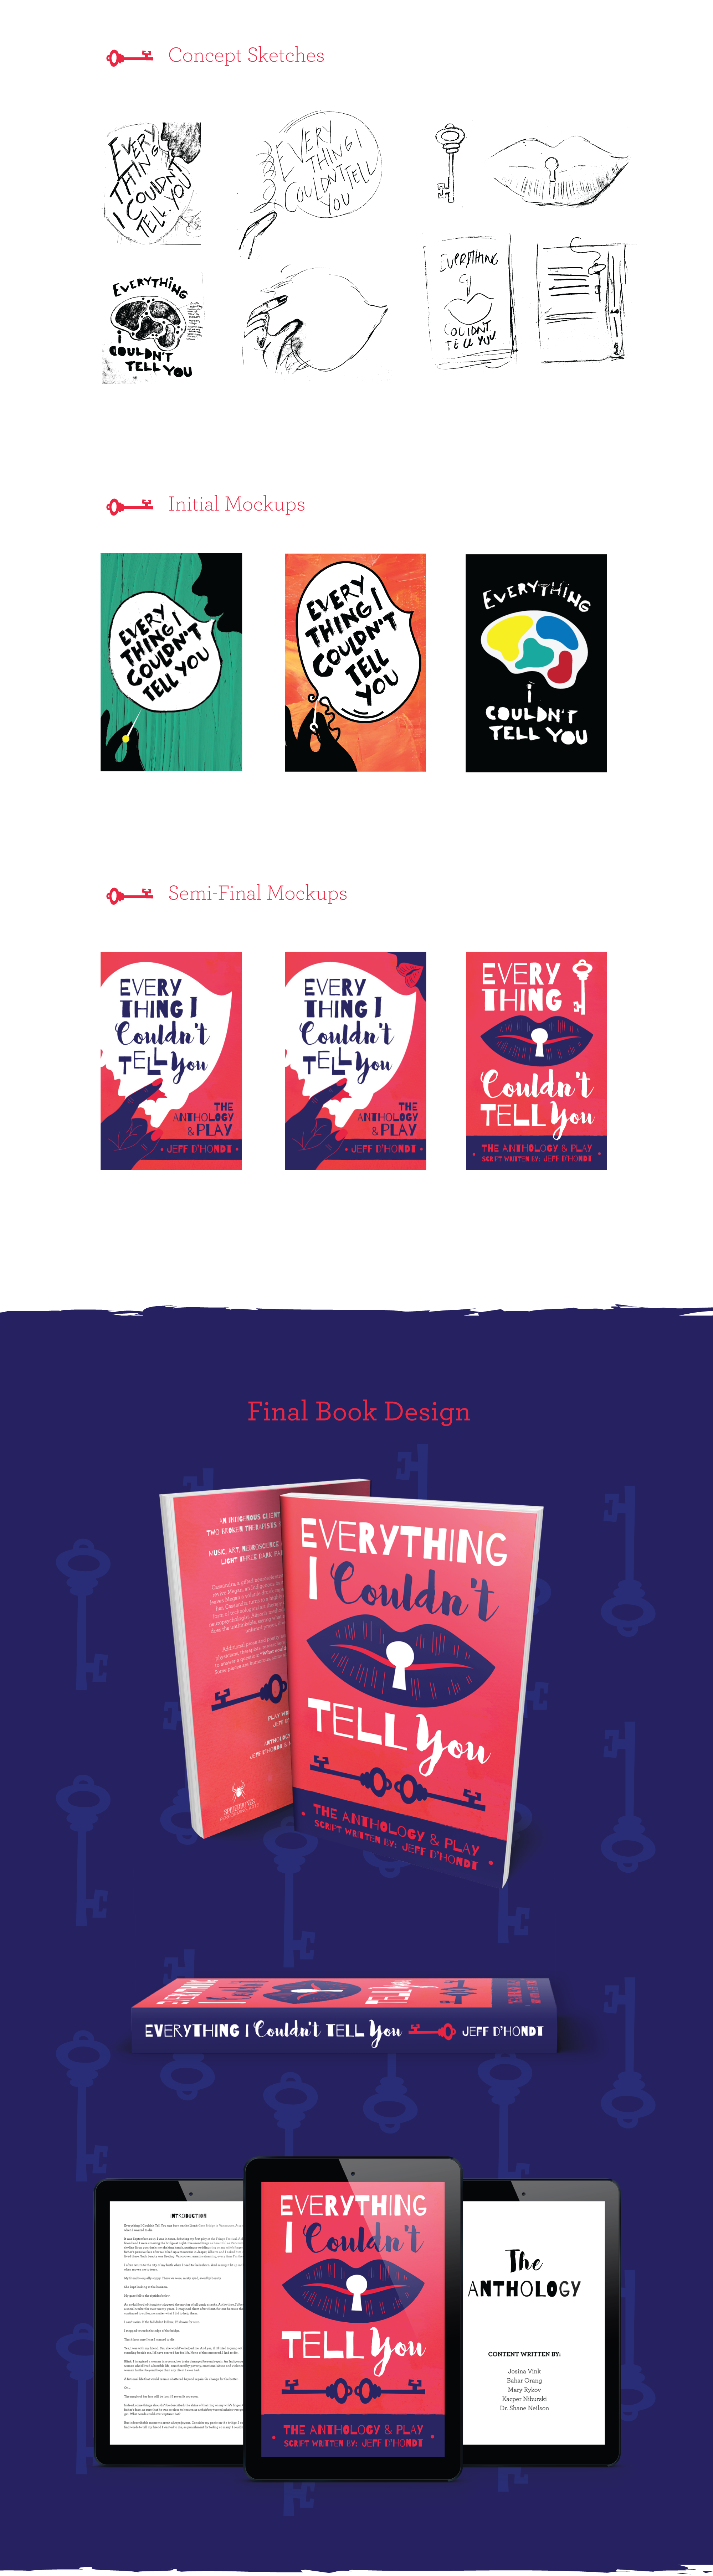 Everything I Couldn't Tell You Book Design and Process